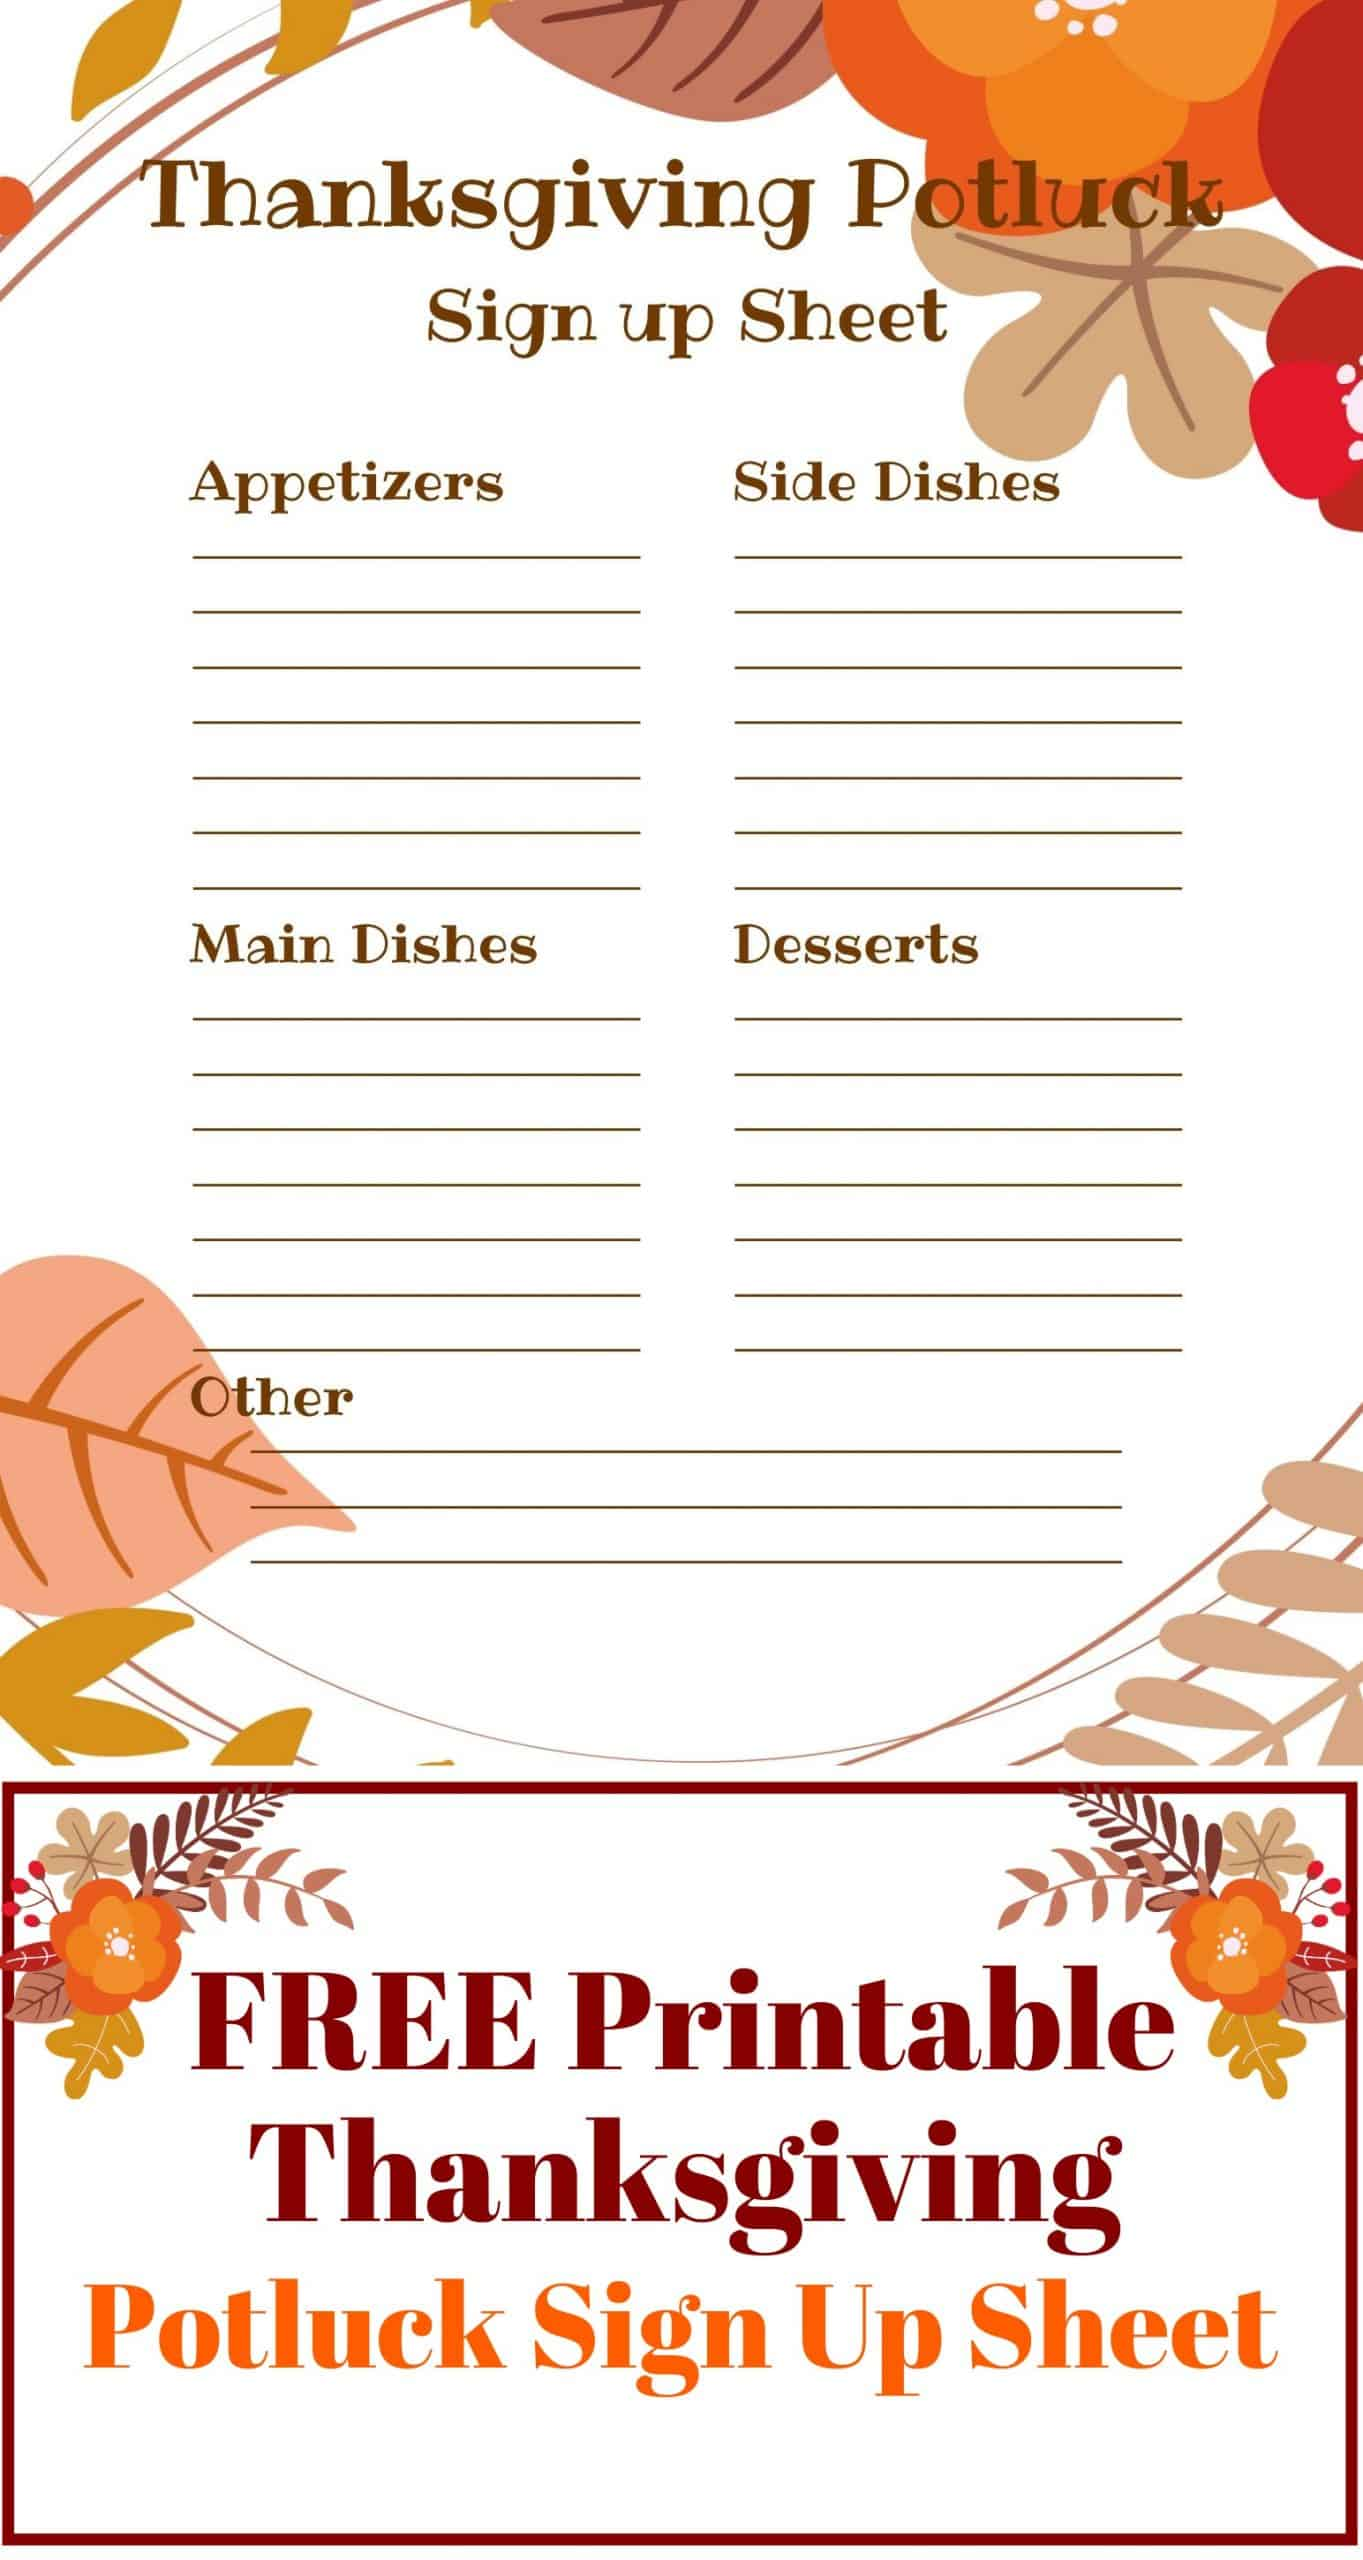 Thanksgiving Potluck Sign Up Sheet Just What We Eat